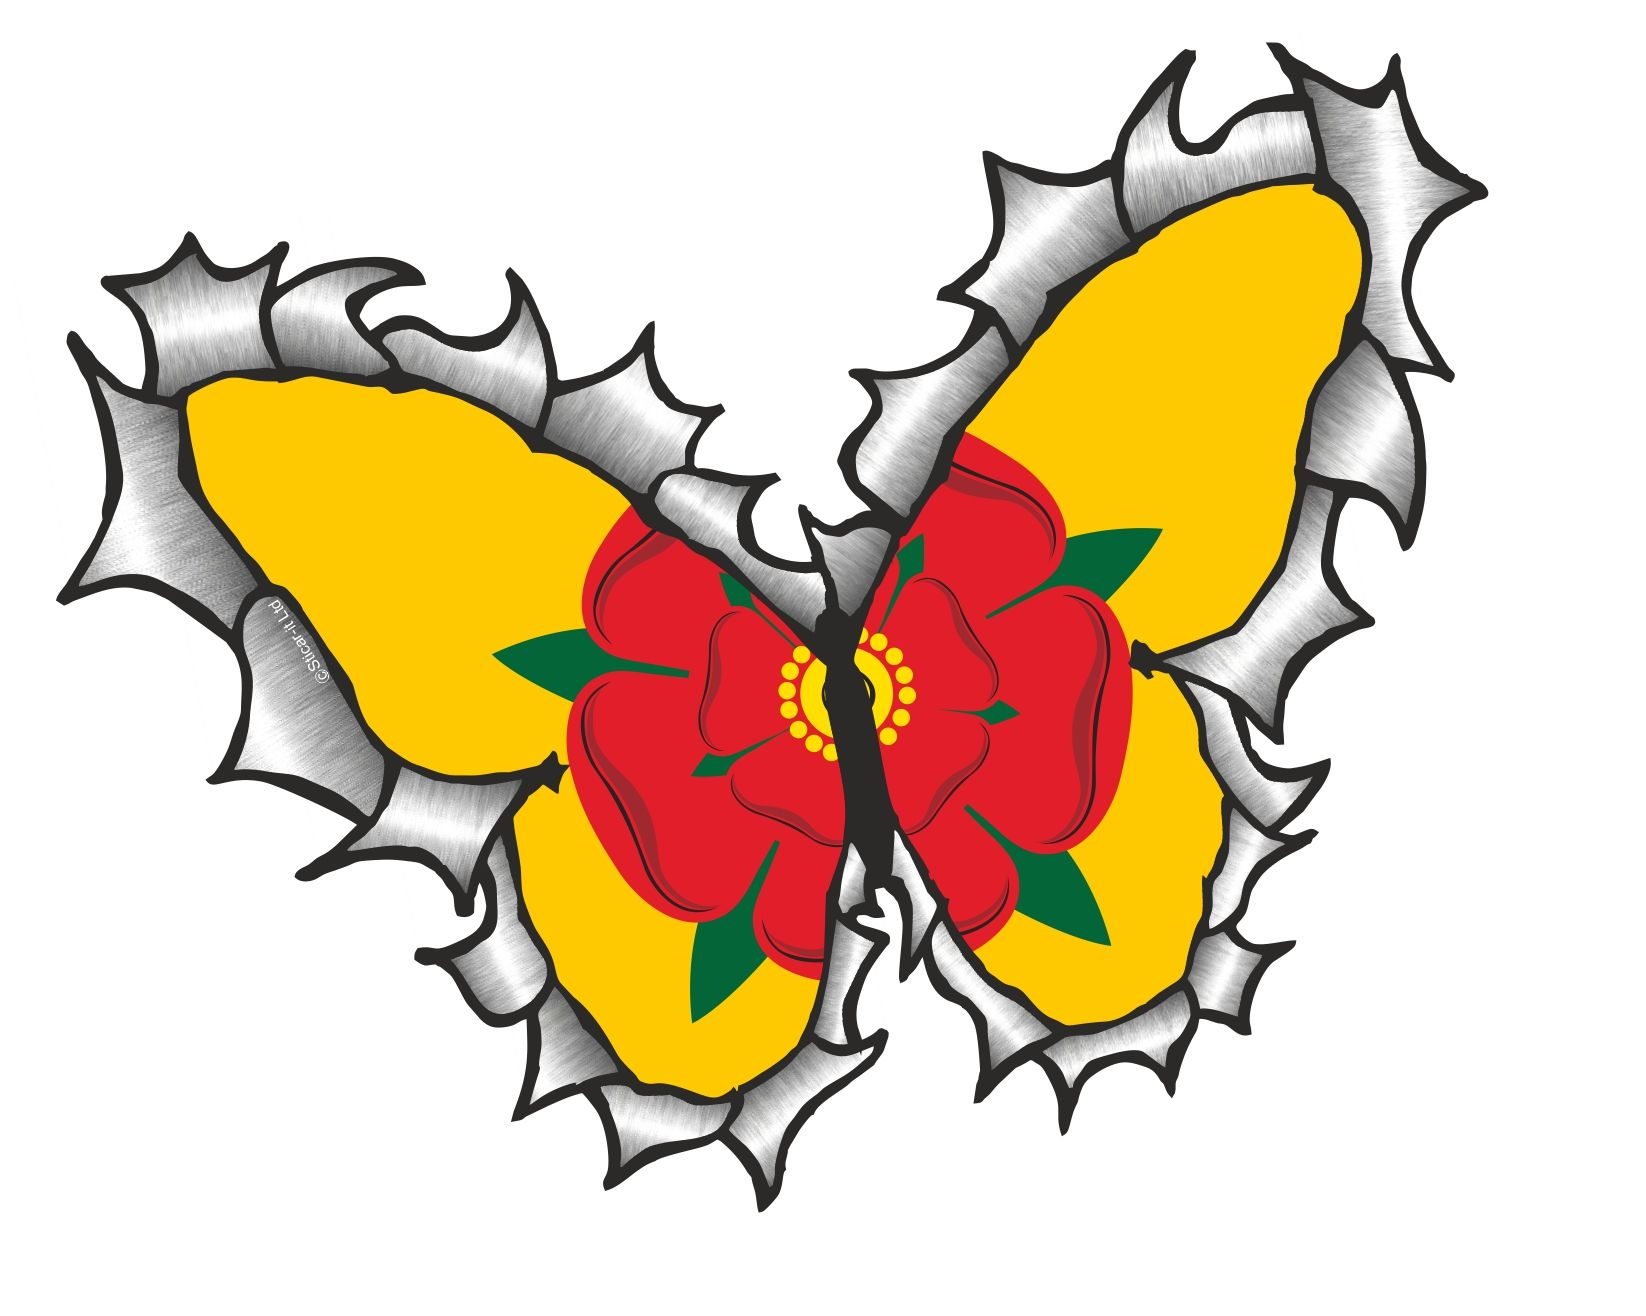 Ripped Torn Metal Butterfly Design With Lancashire Rose